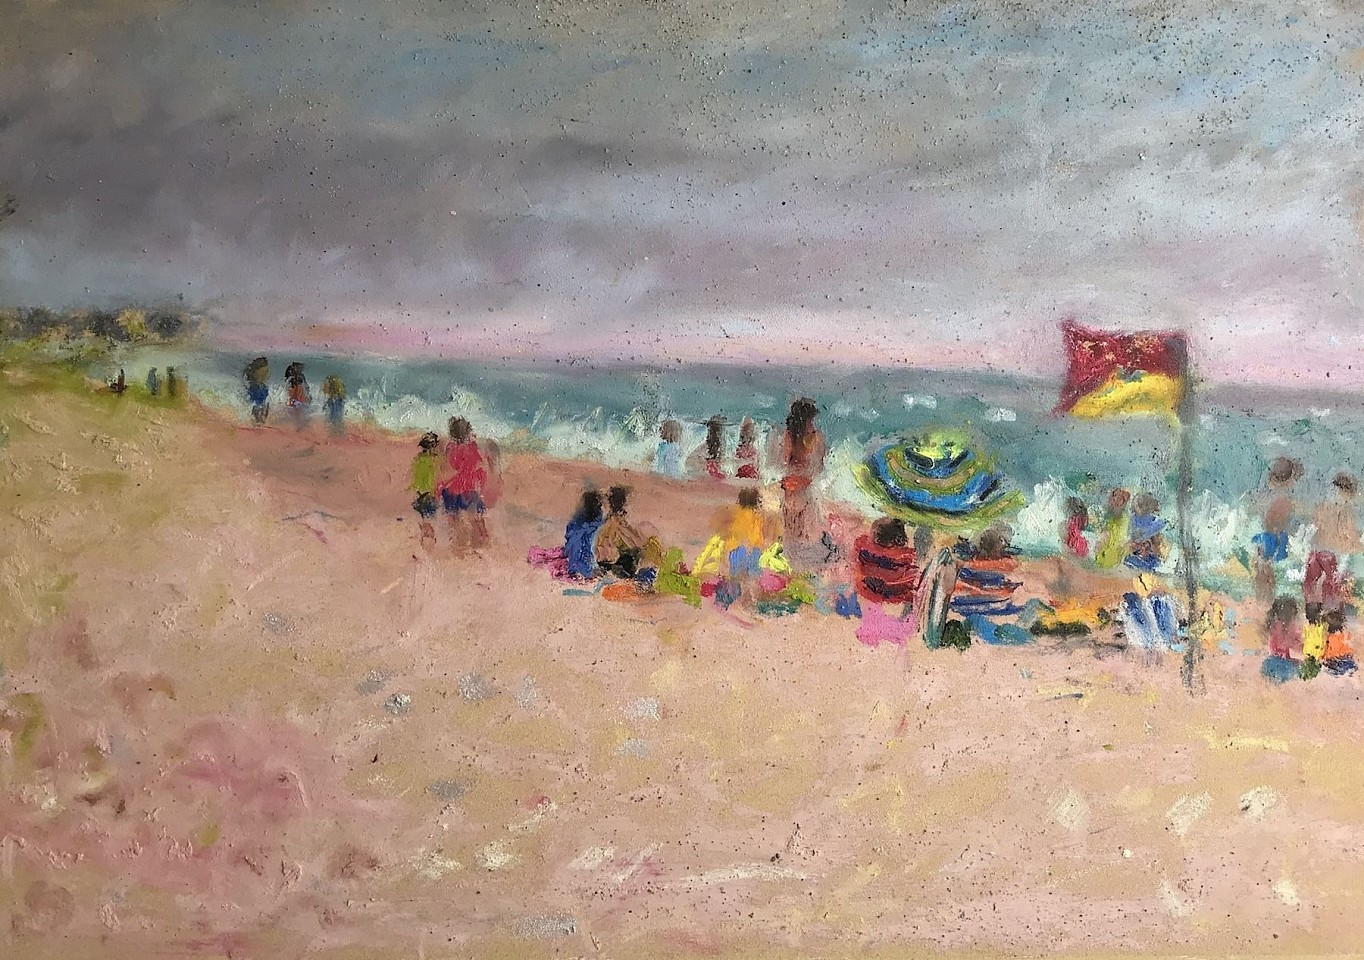 Tracy Burtz ,   Surfside Storm  ,  2019     oil stick & oil pastel ,  14 x 20 in. (35.6 x 50.8 cm)     TB191106